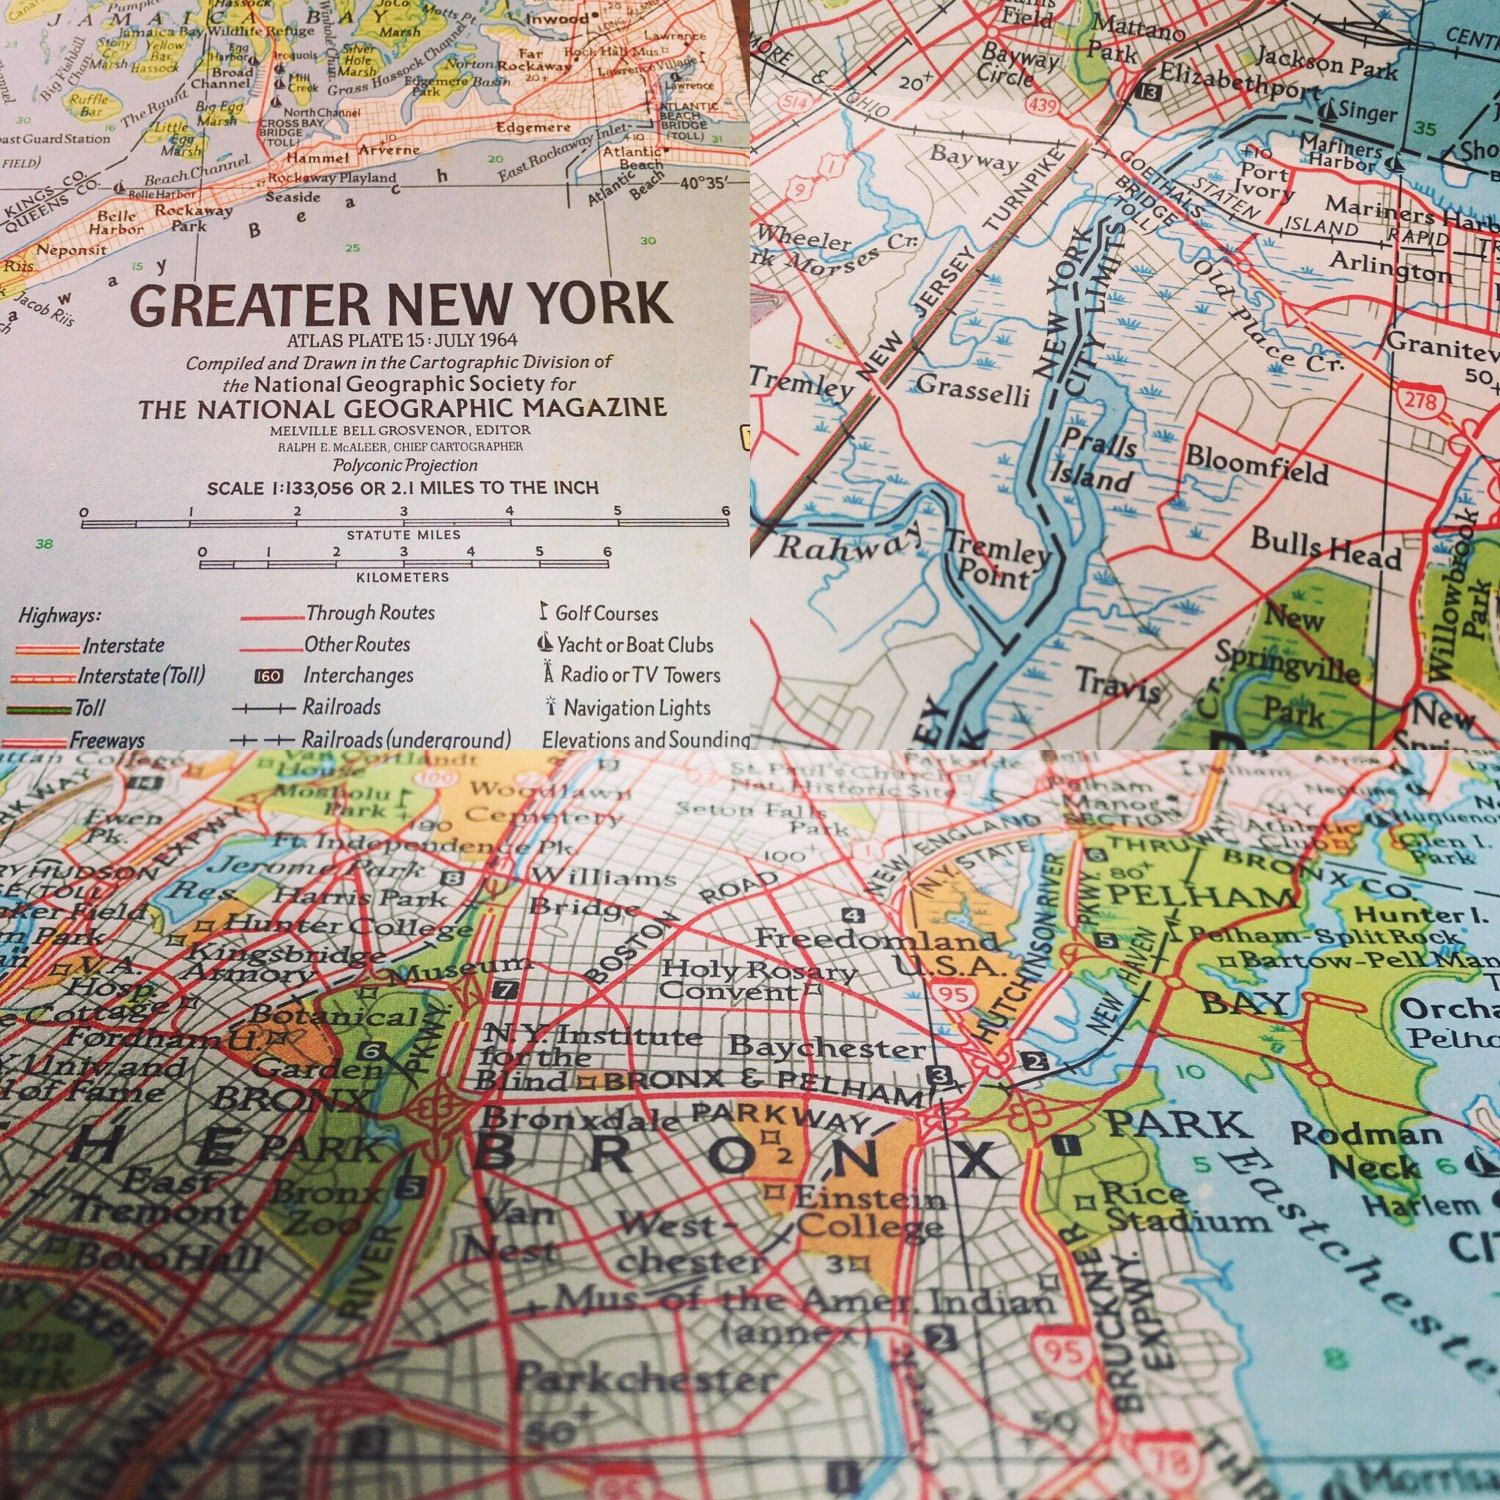 Map Of Greater New York City.New Listing Vintage 1964 Greater New York Tourist Manhattan Map